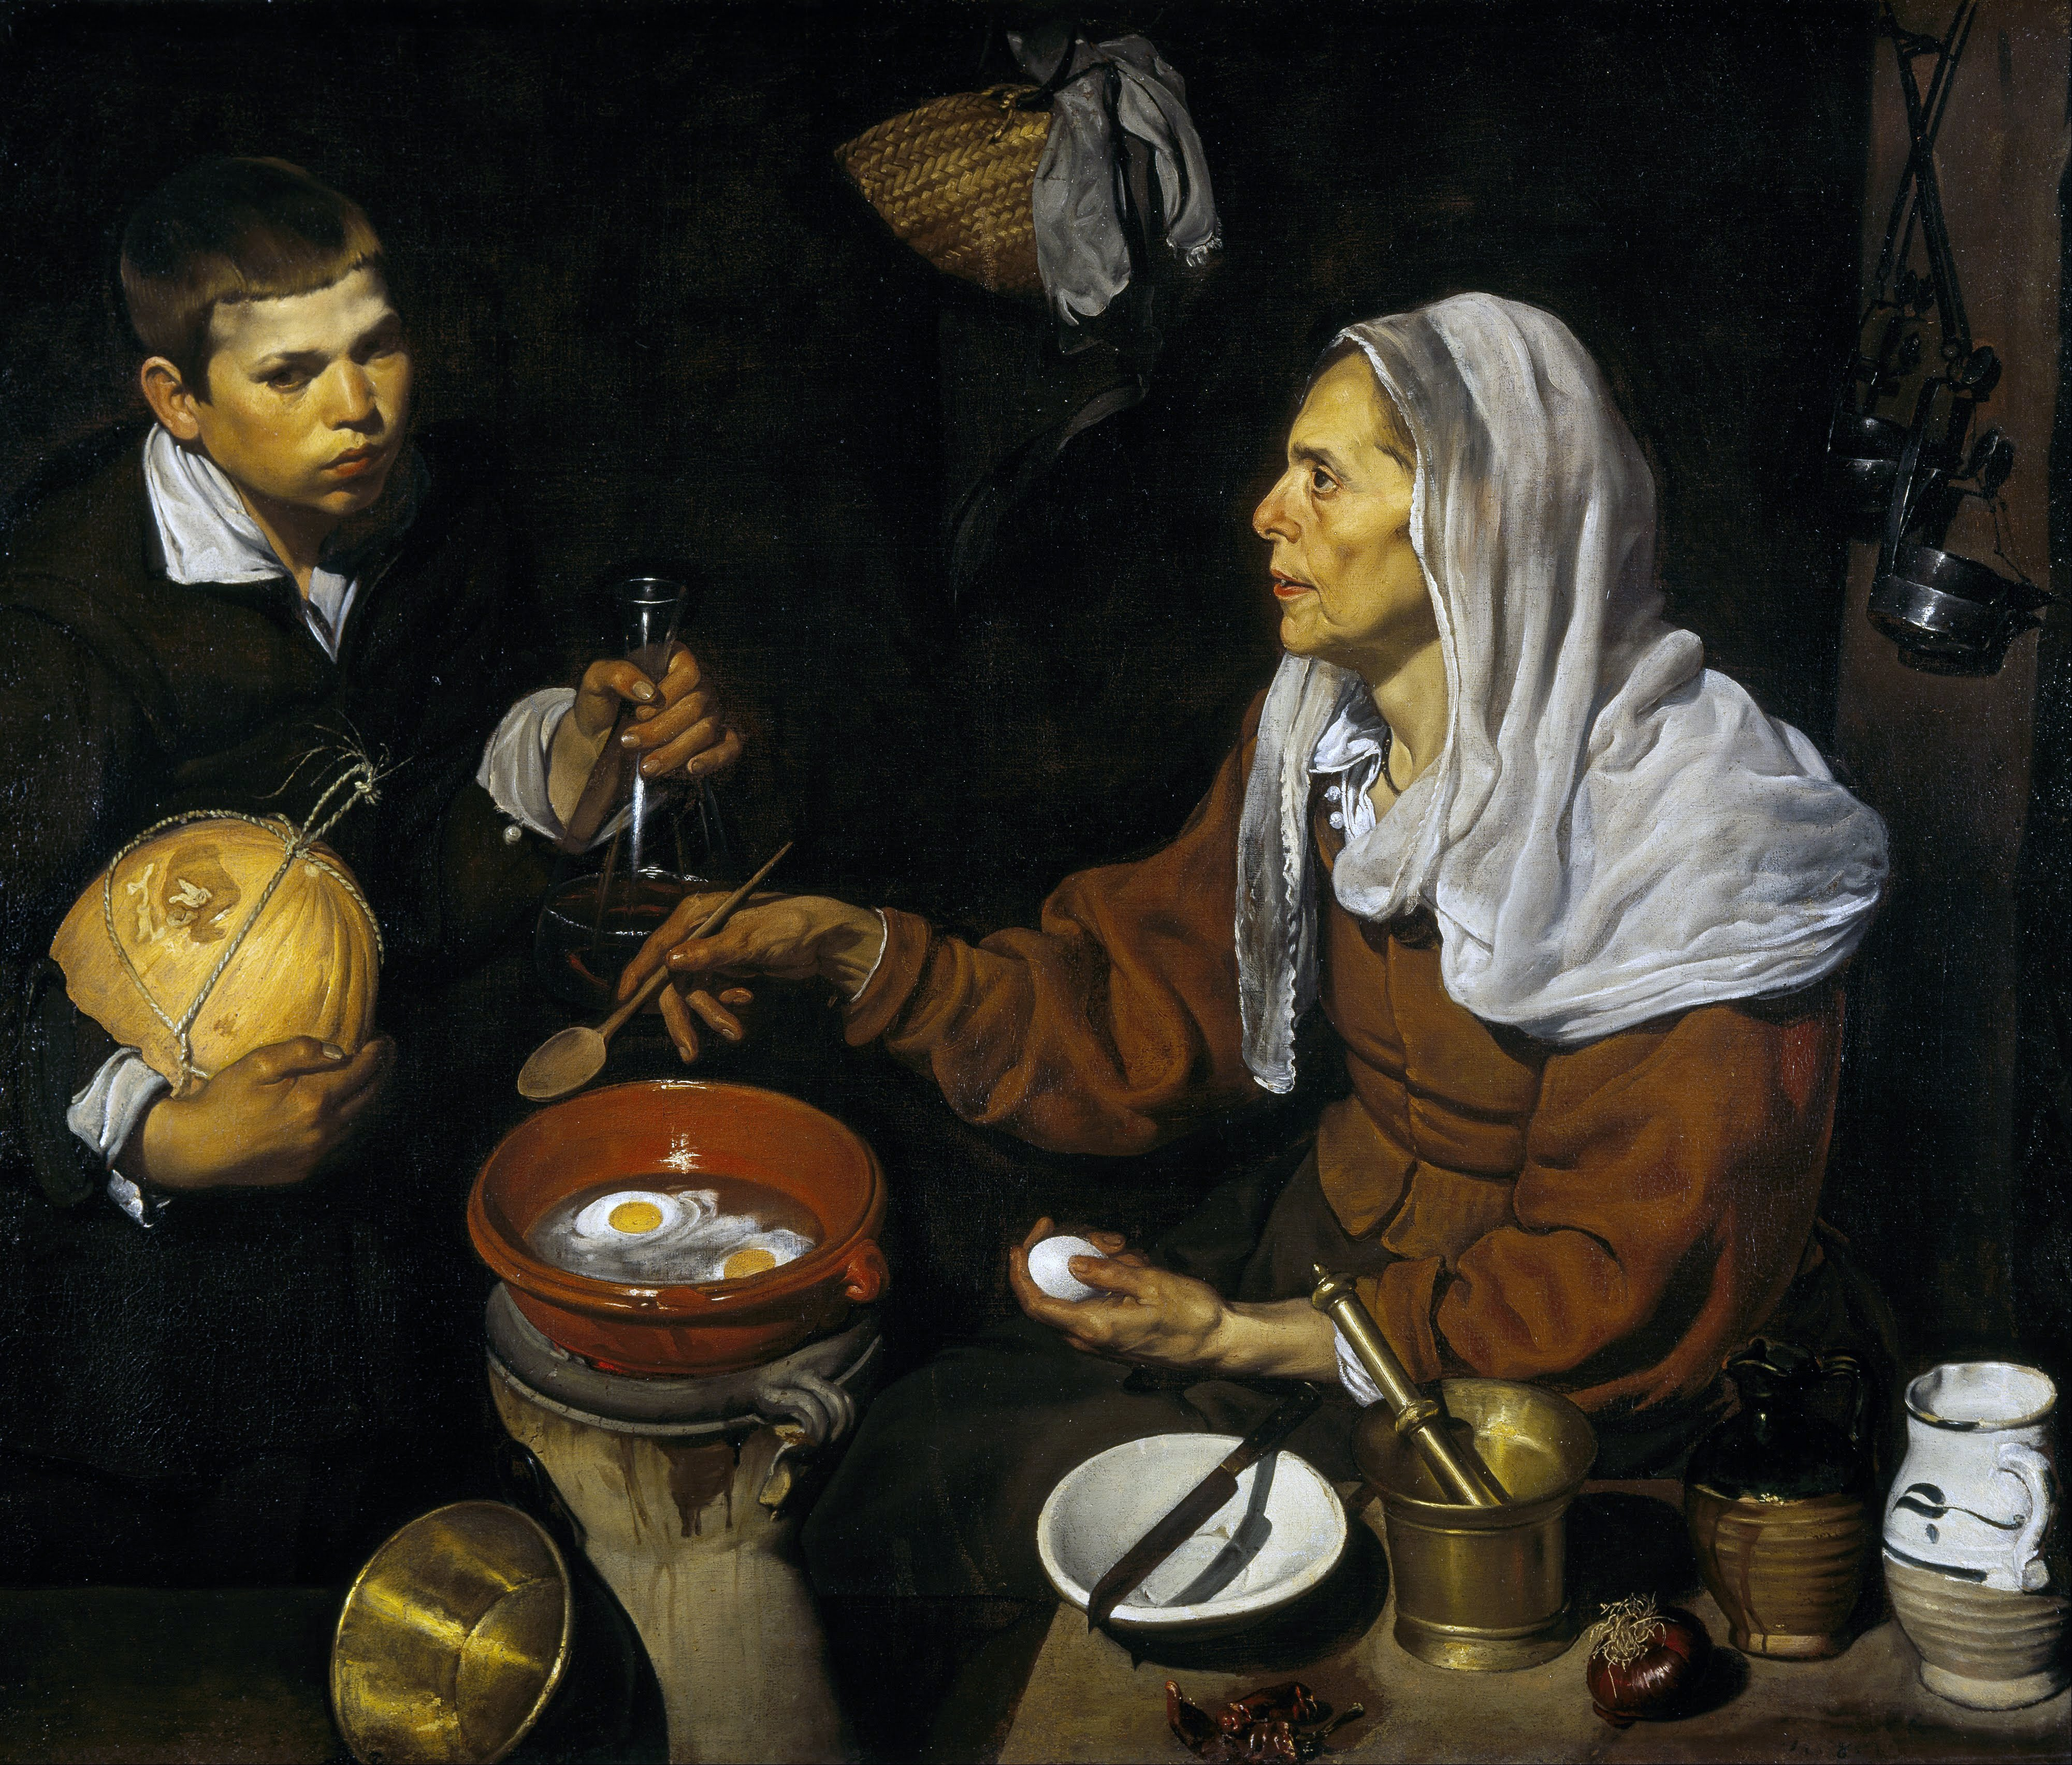 Diego_Velazquez_-_An_Old_Woman_Cooking_Eggs_-_Google_Art_Project-2